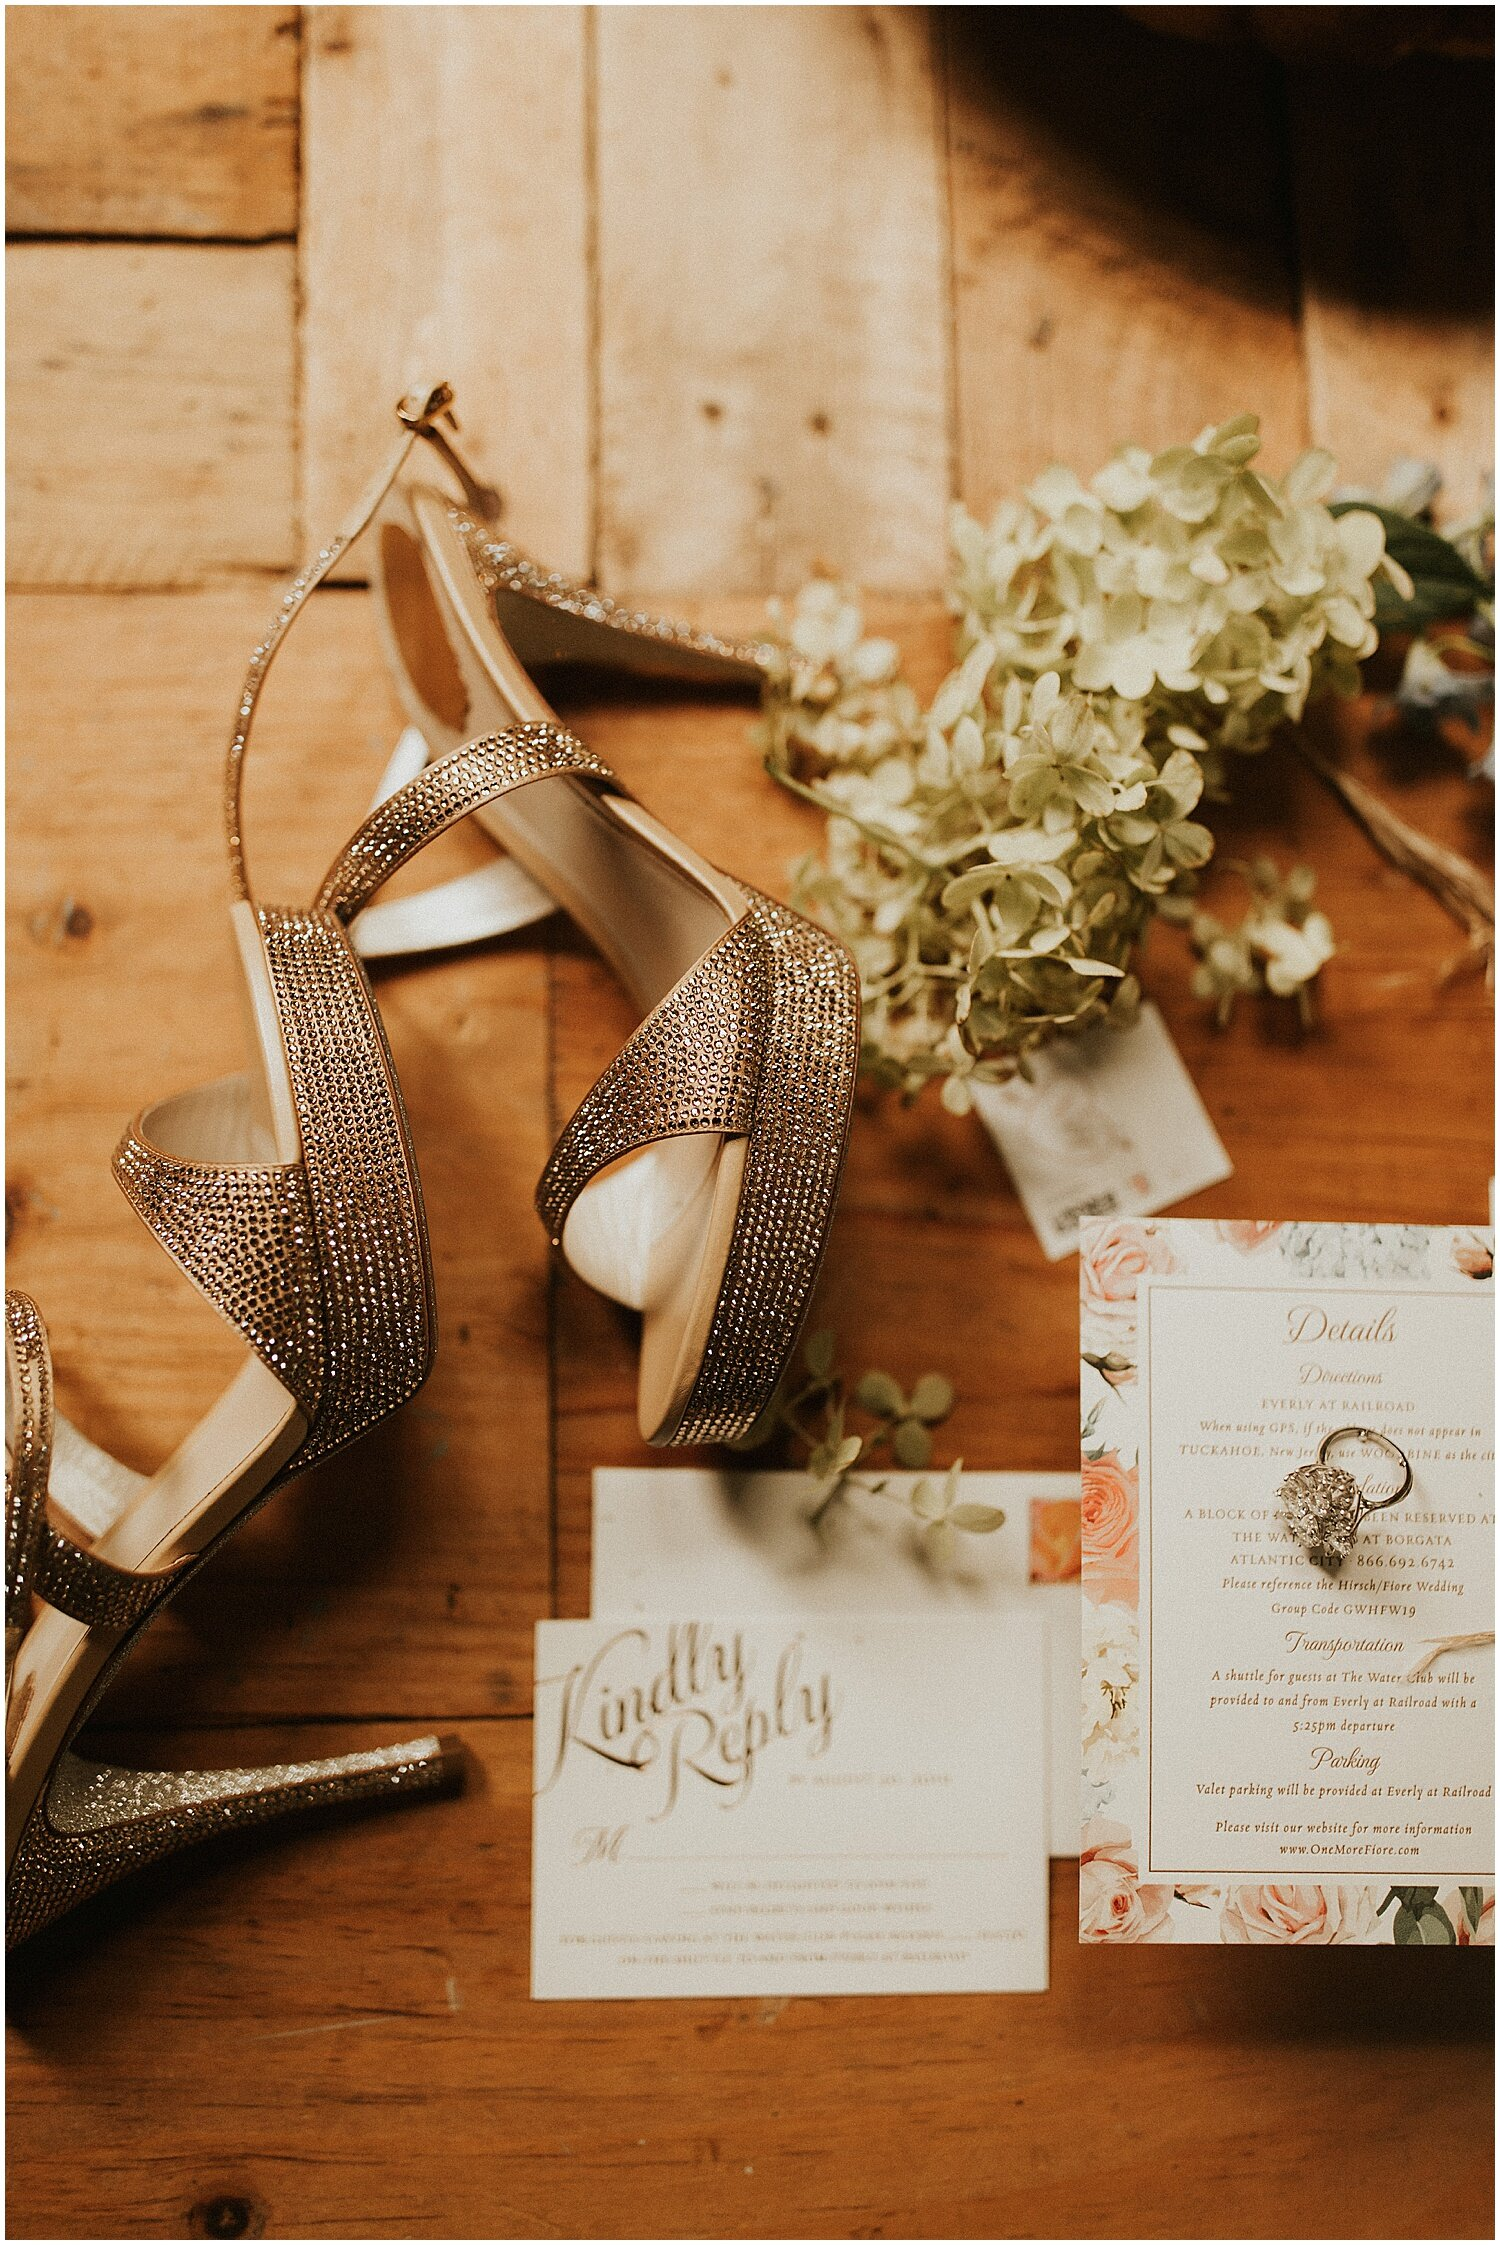 wedding_at_everly_at_railroad_cape_may_philadelphia_wedding_photographer_brittany_boote_0044.jpg